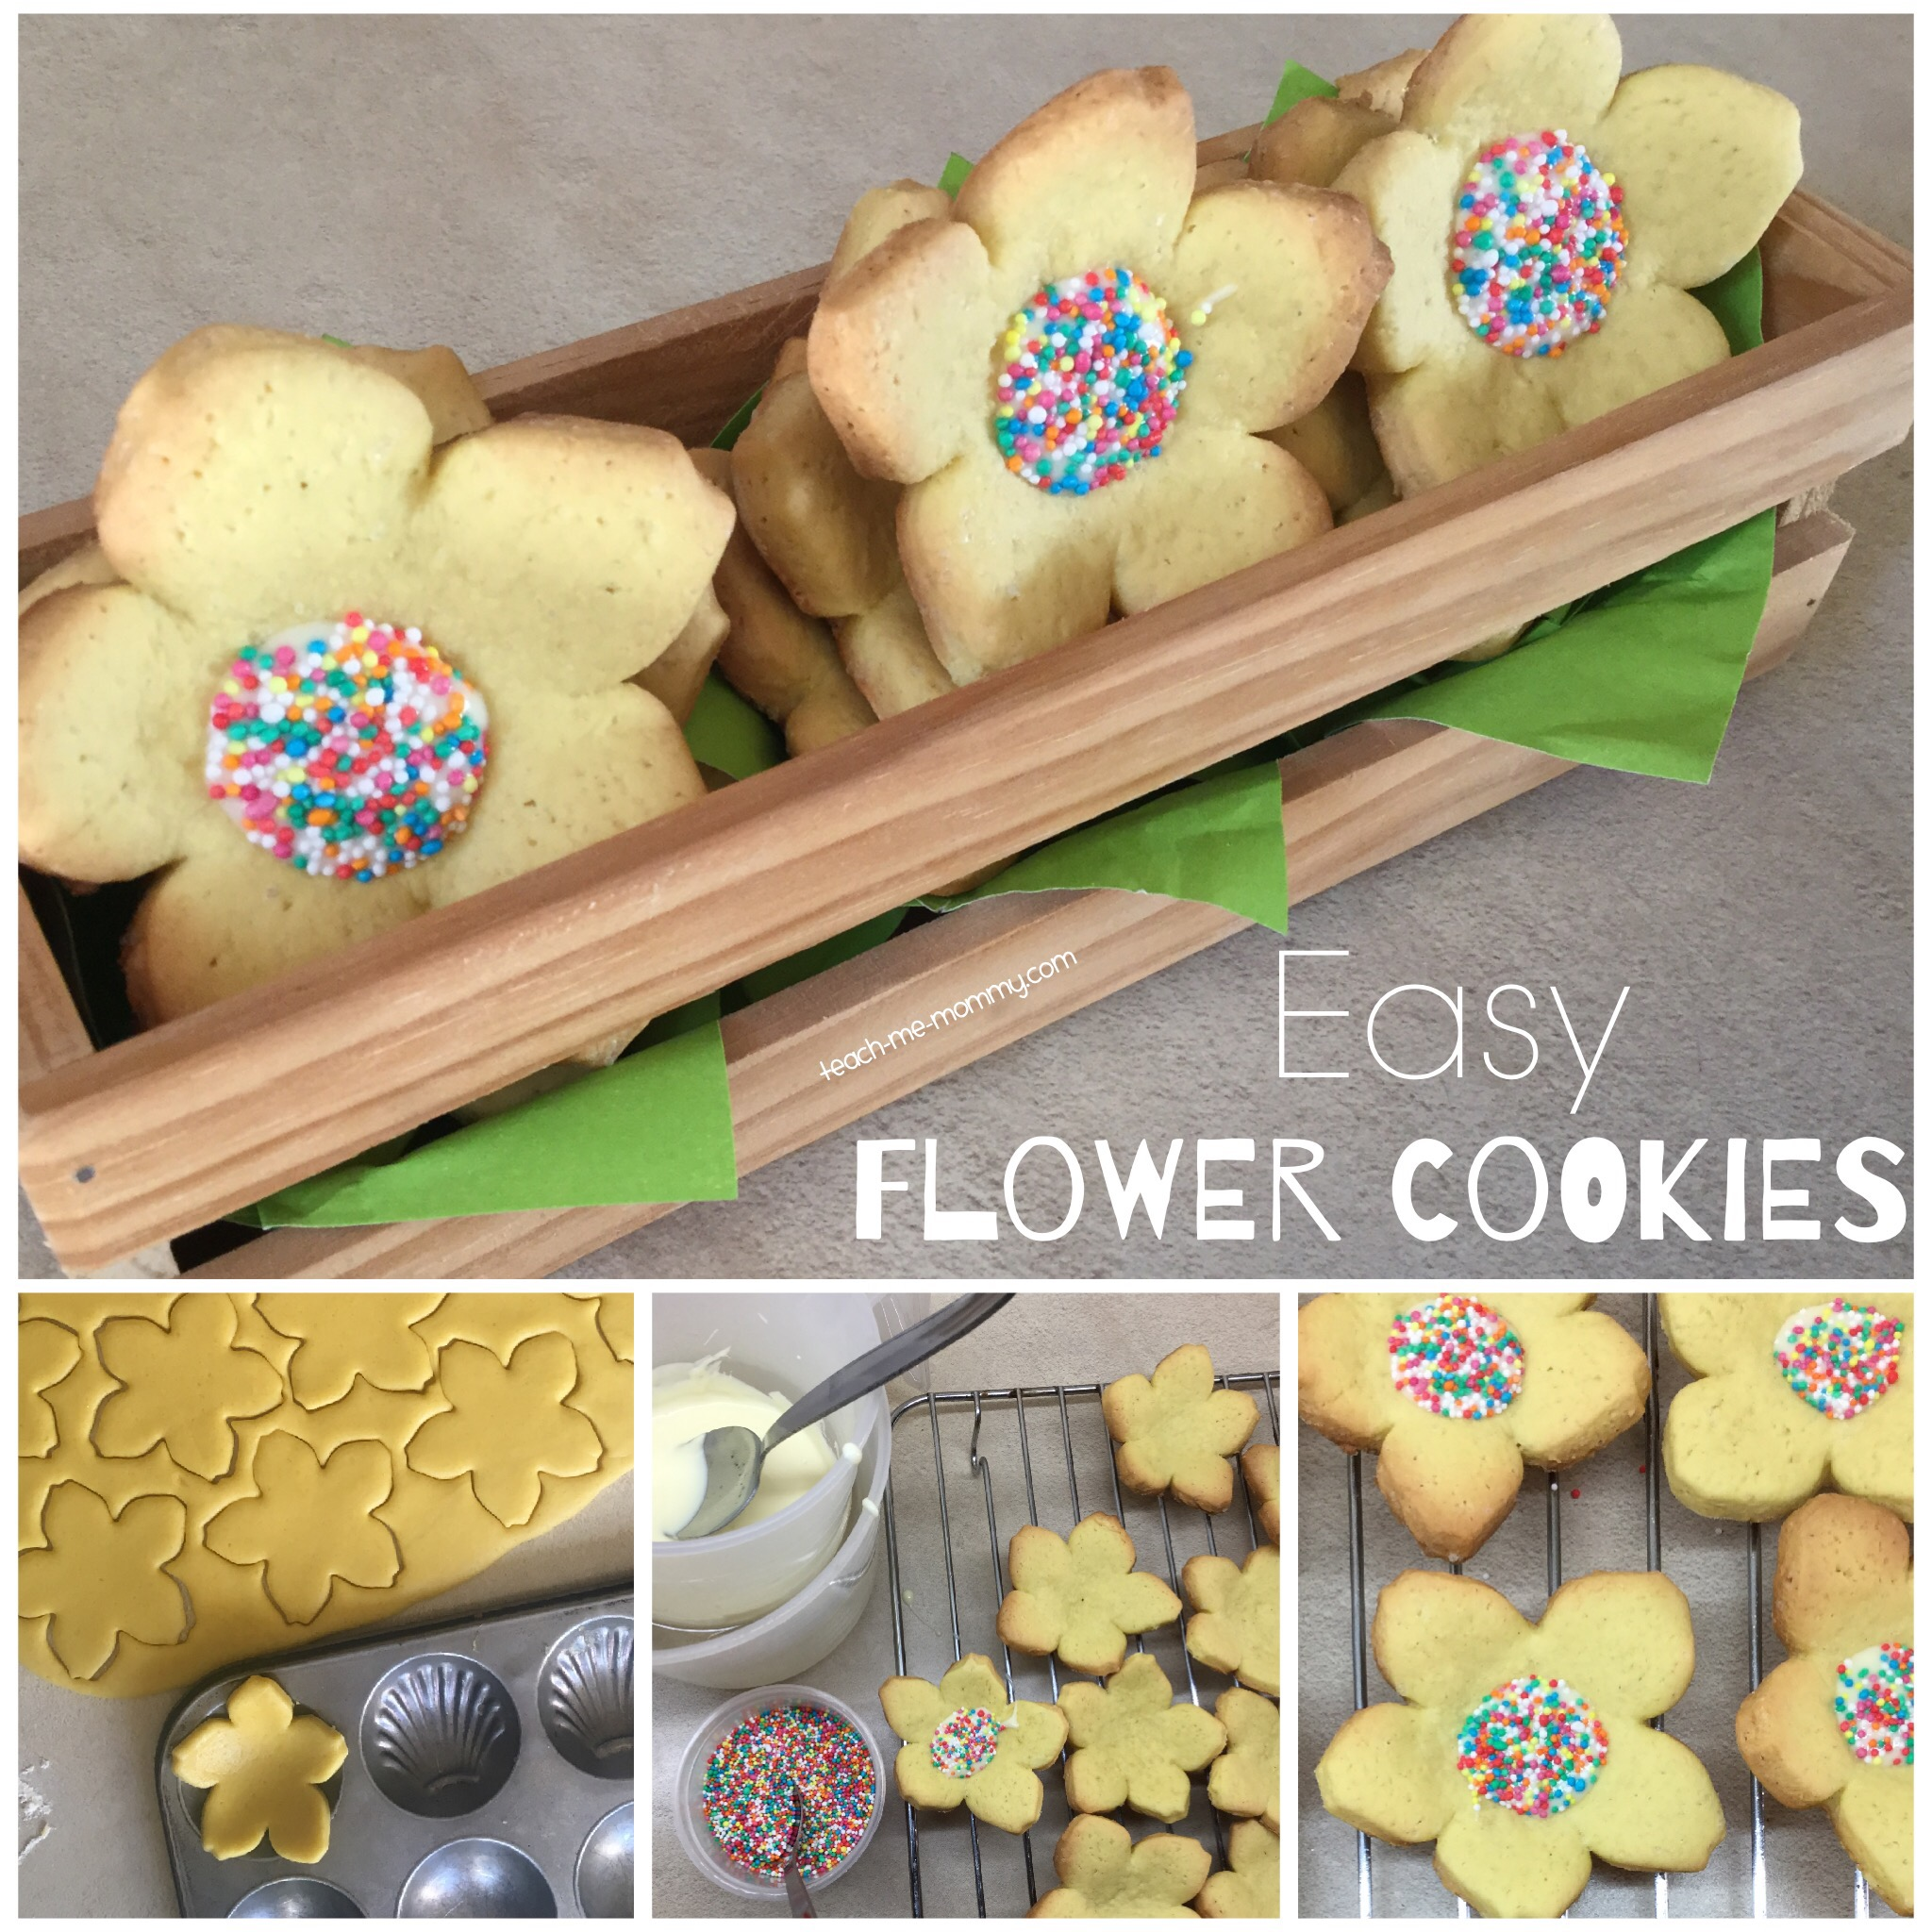 Easy flower cookies